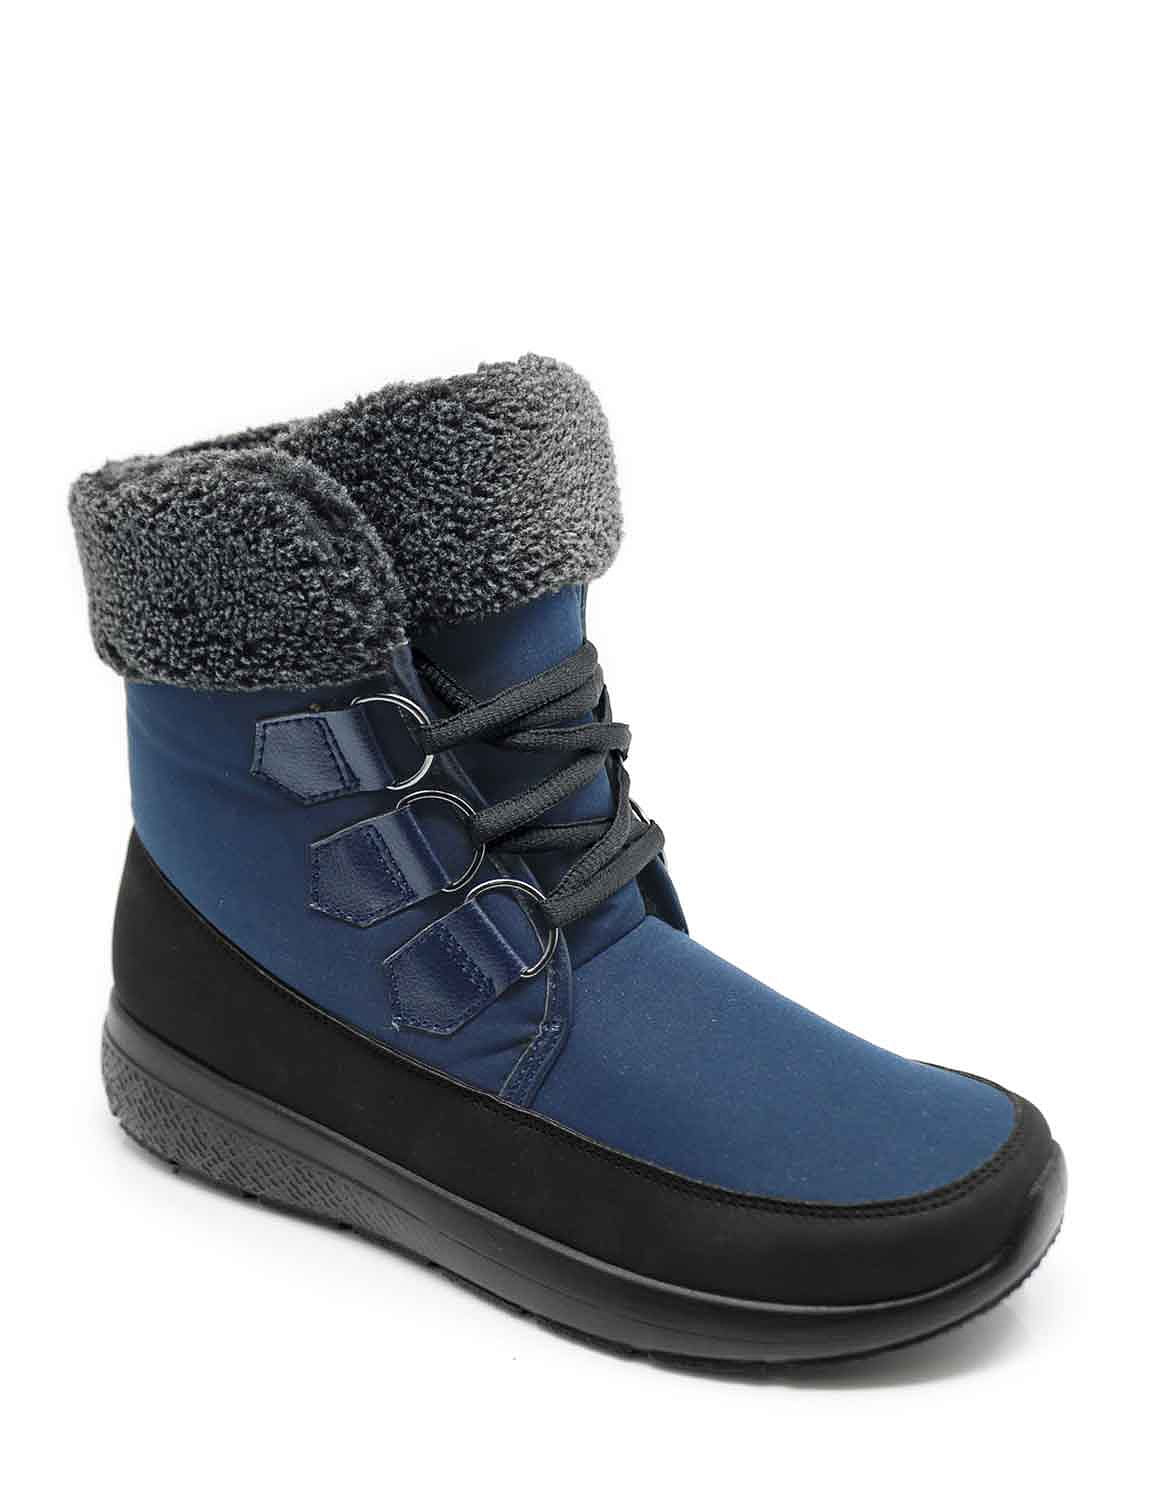 Dr Keller Wide E Fit Lace Up Outdoor Fleece Top Boot  - Blue